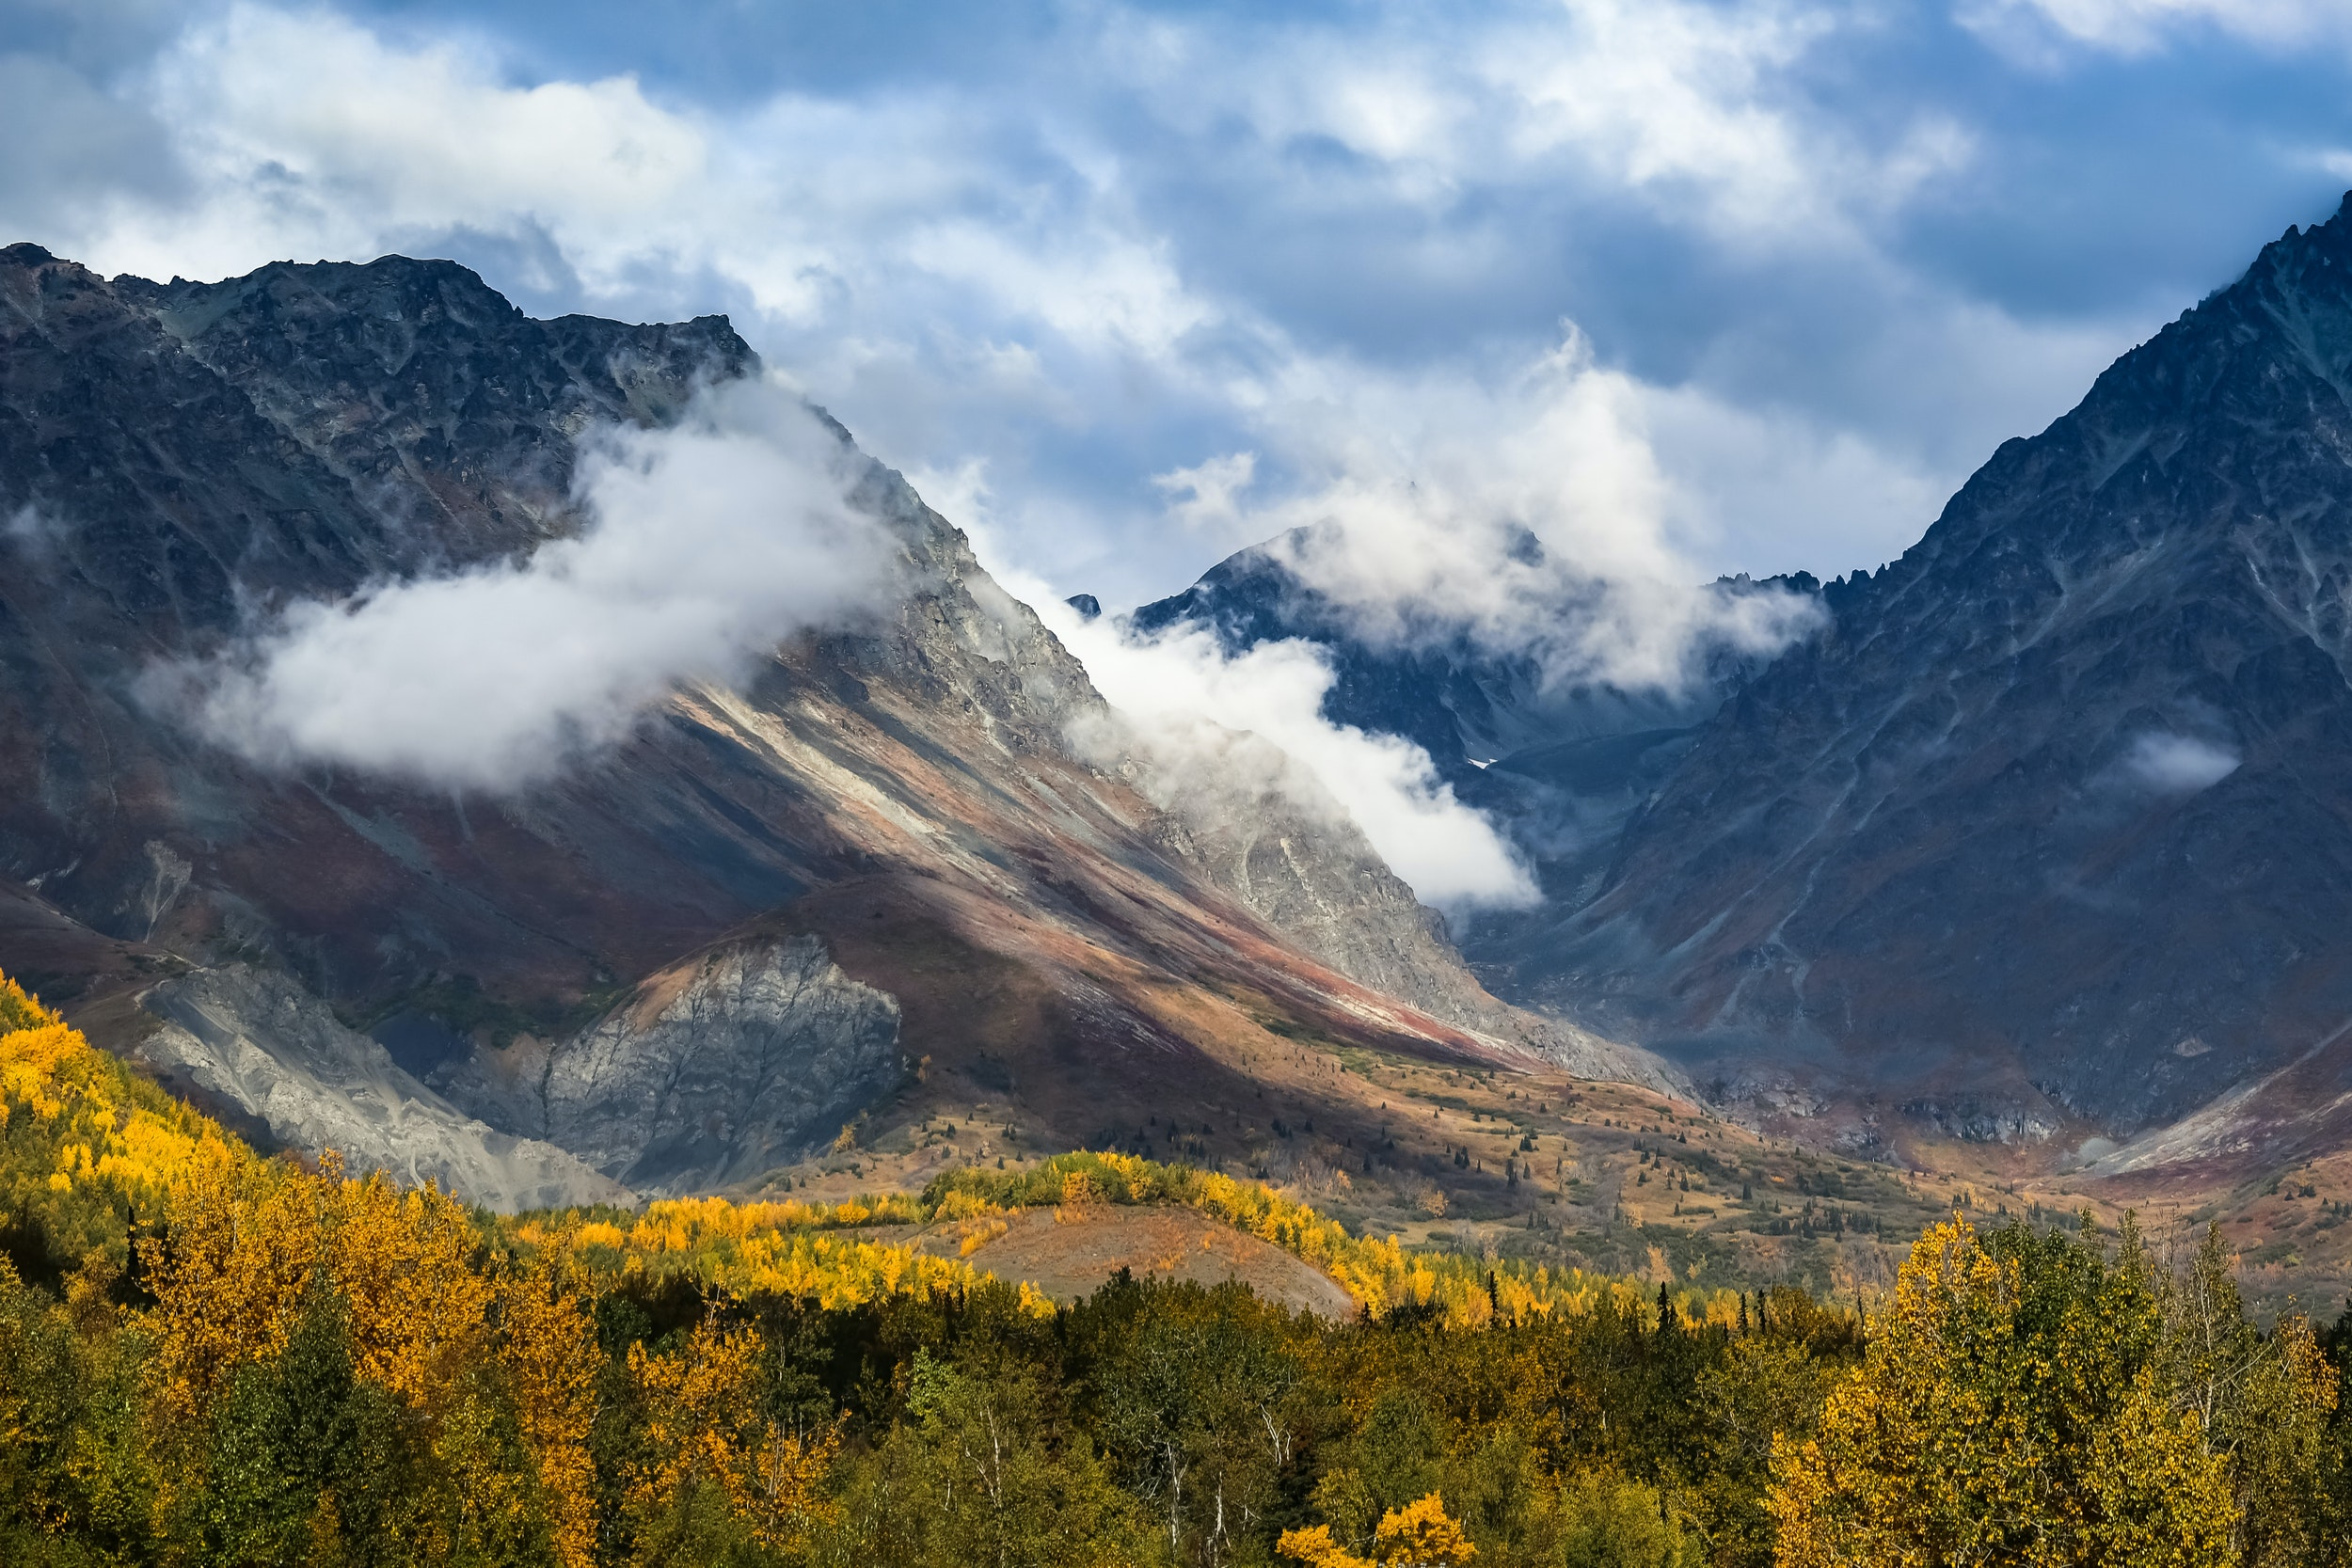 Hatcher Pass in the Talkeetna Mountains offers great opportunities for budding photographers at this time of year.